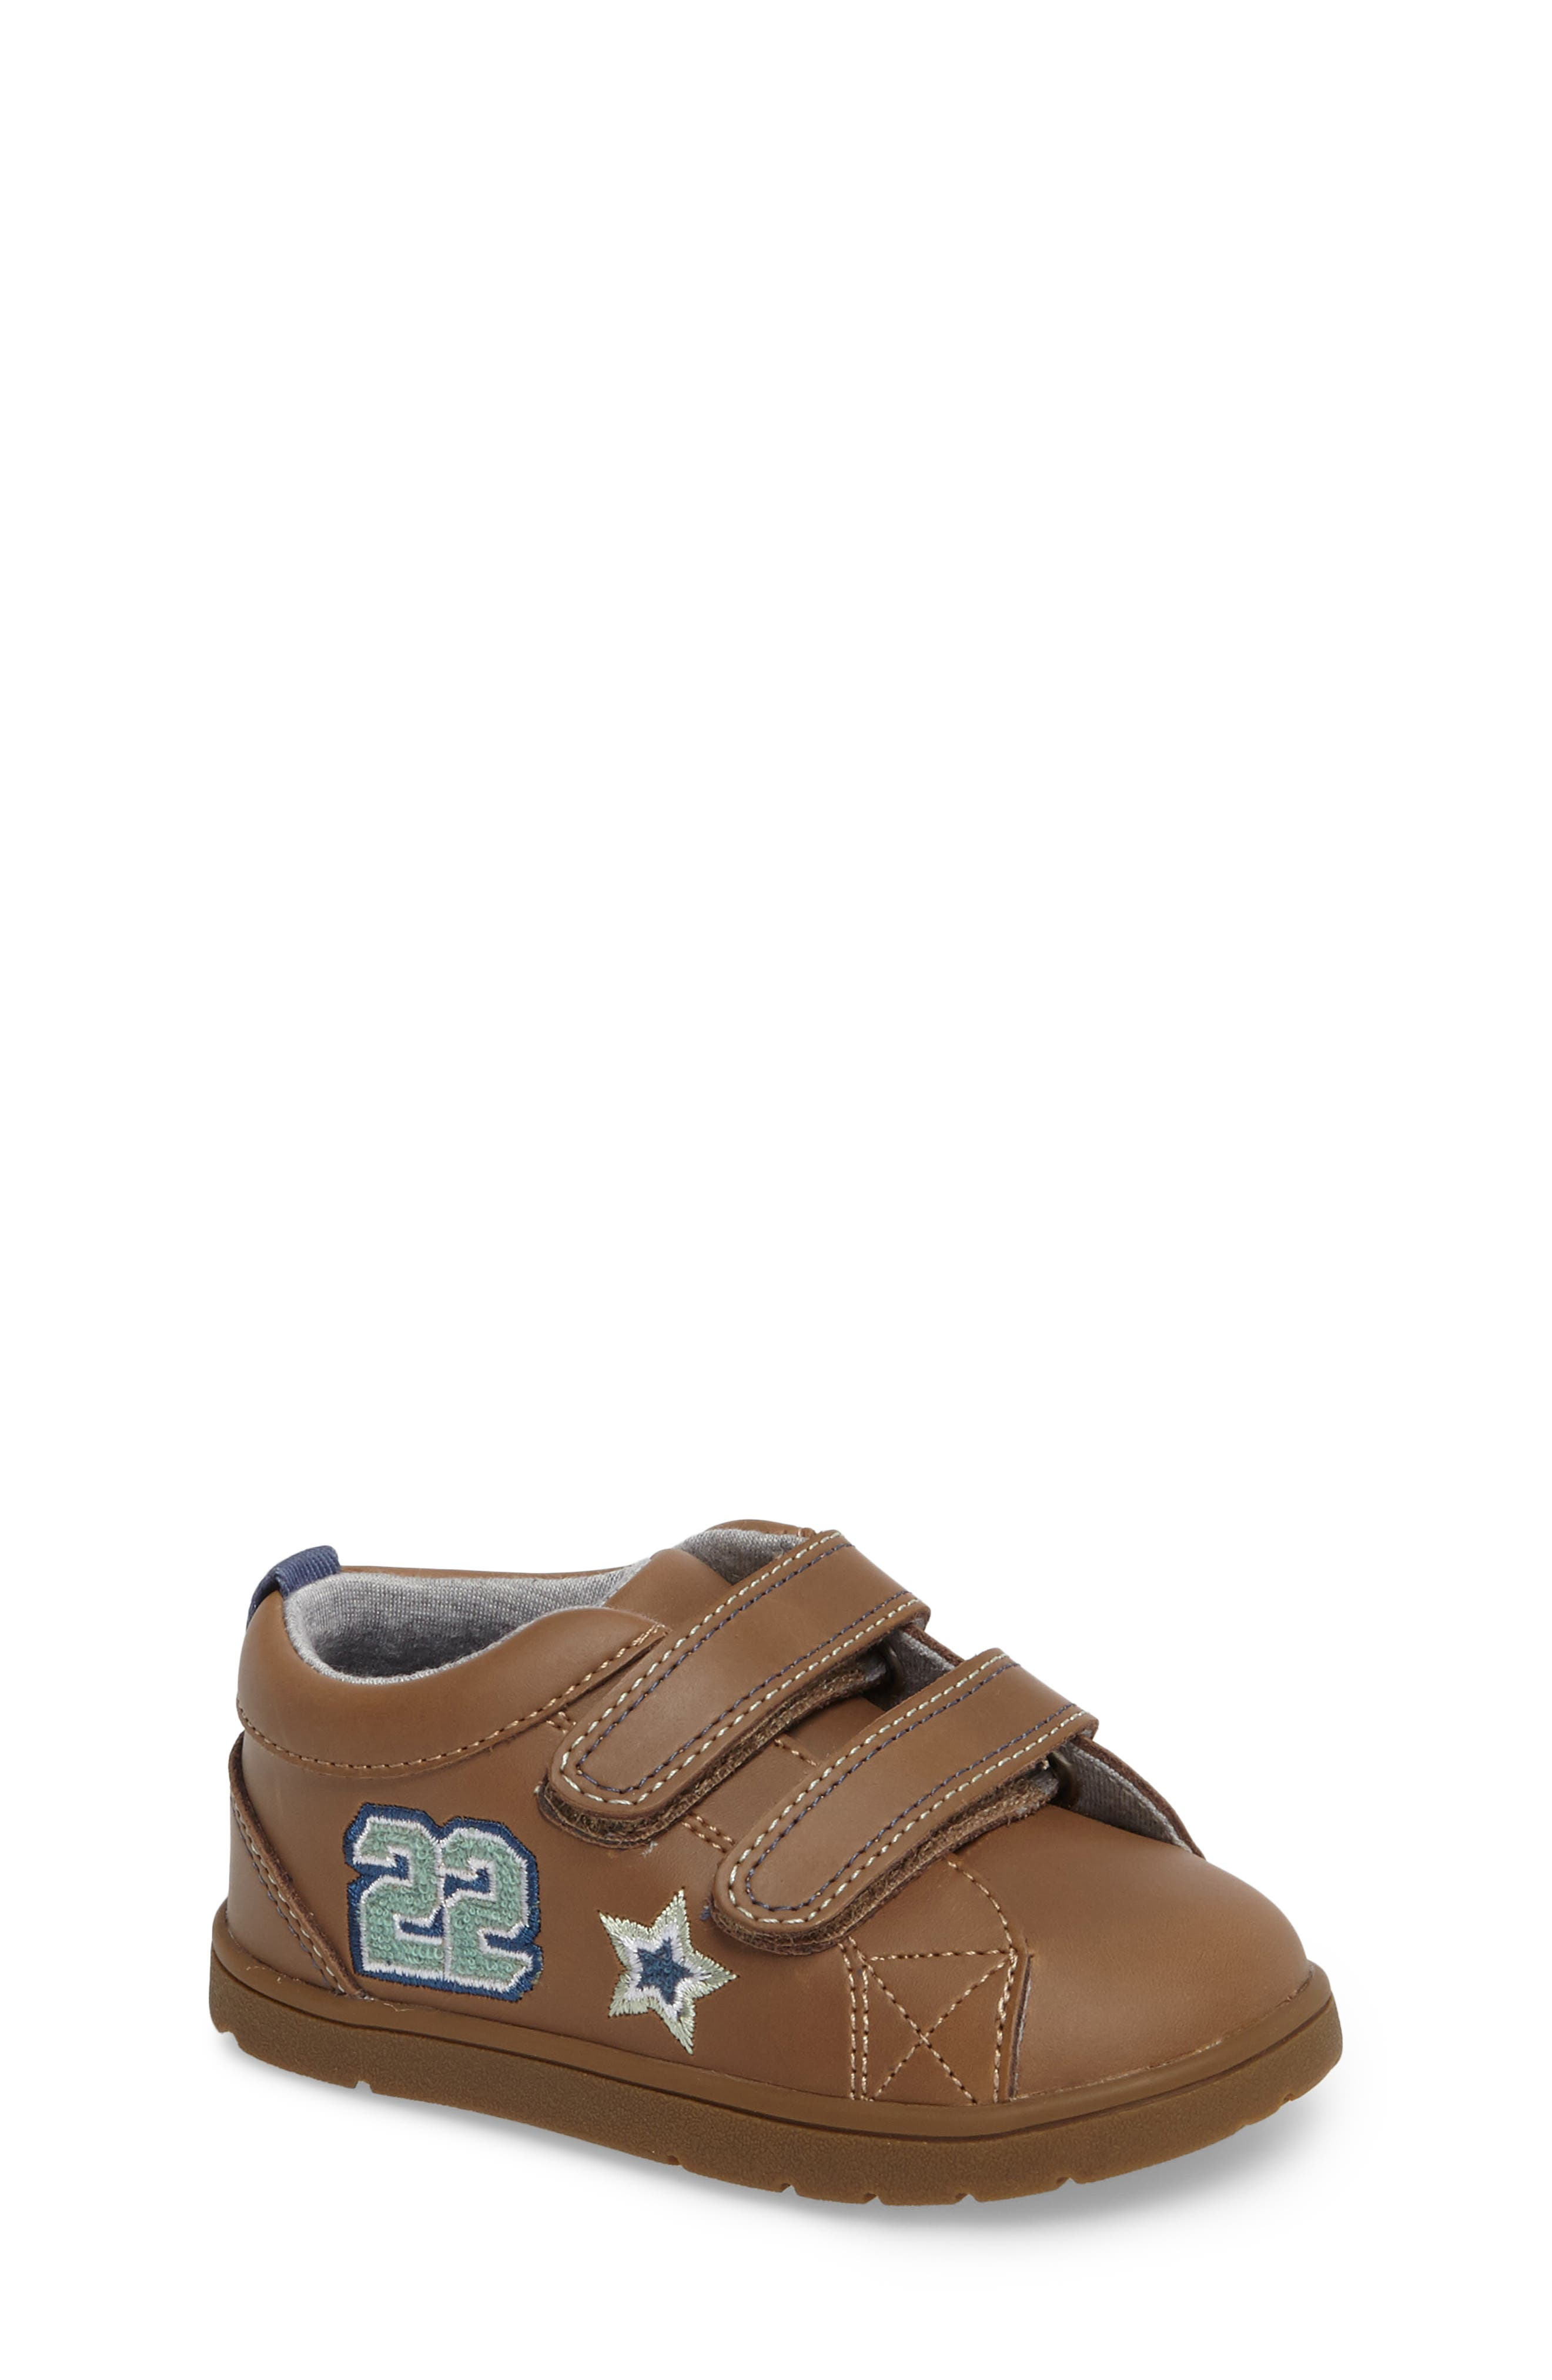 Main Image - Tucker + Tate Conner Embroidered Sneaker (Baby, Walker & Toddler)